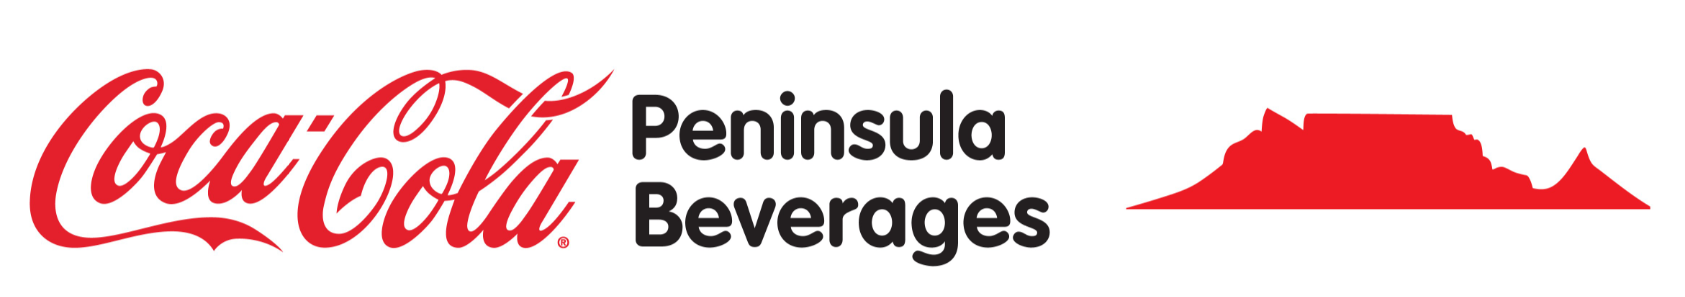 Peninsula Beverages : Brand Short Description Type Here.